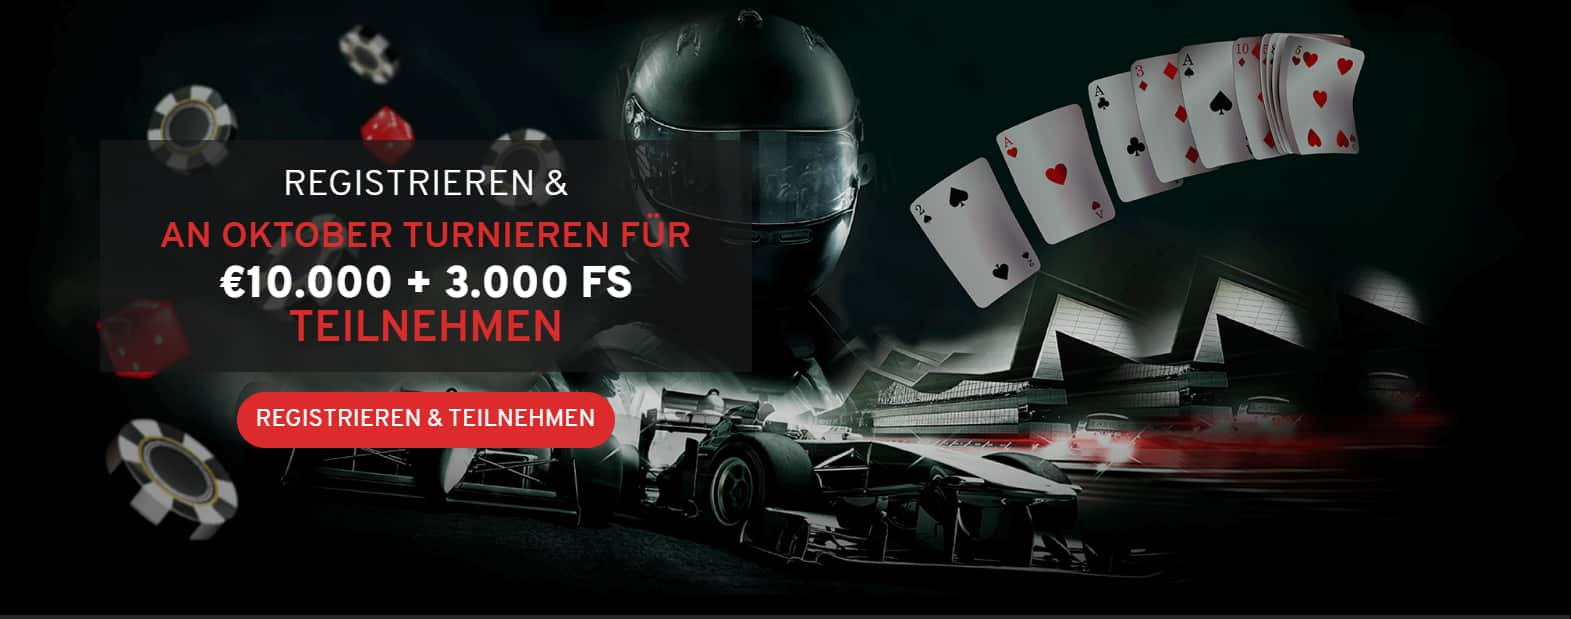 N1 Casino Content Images - Germany CasinoTop 03